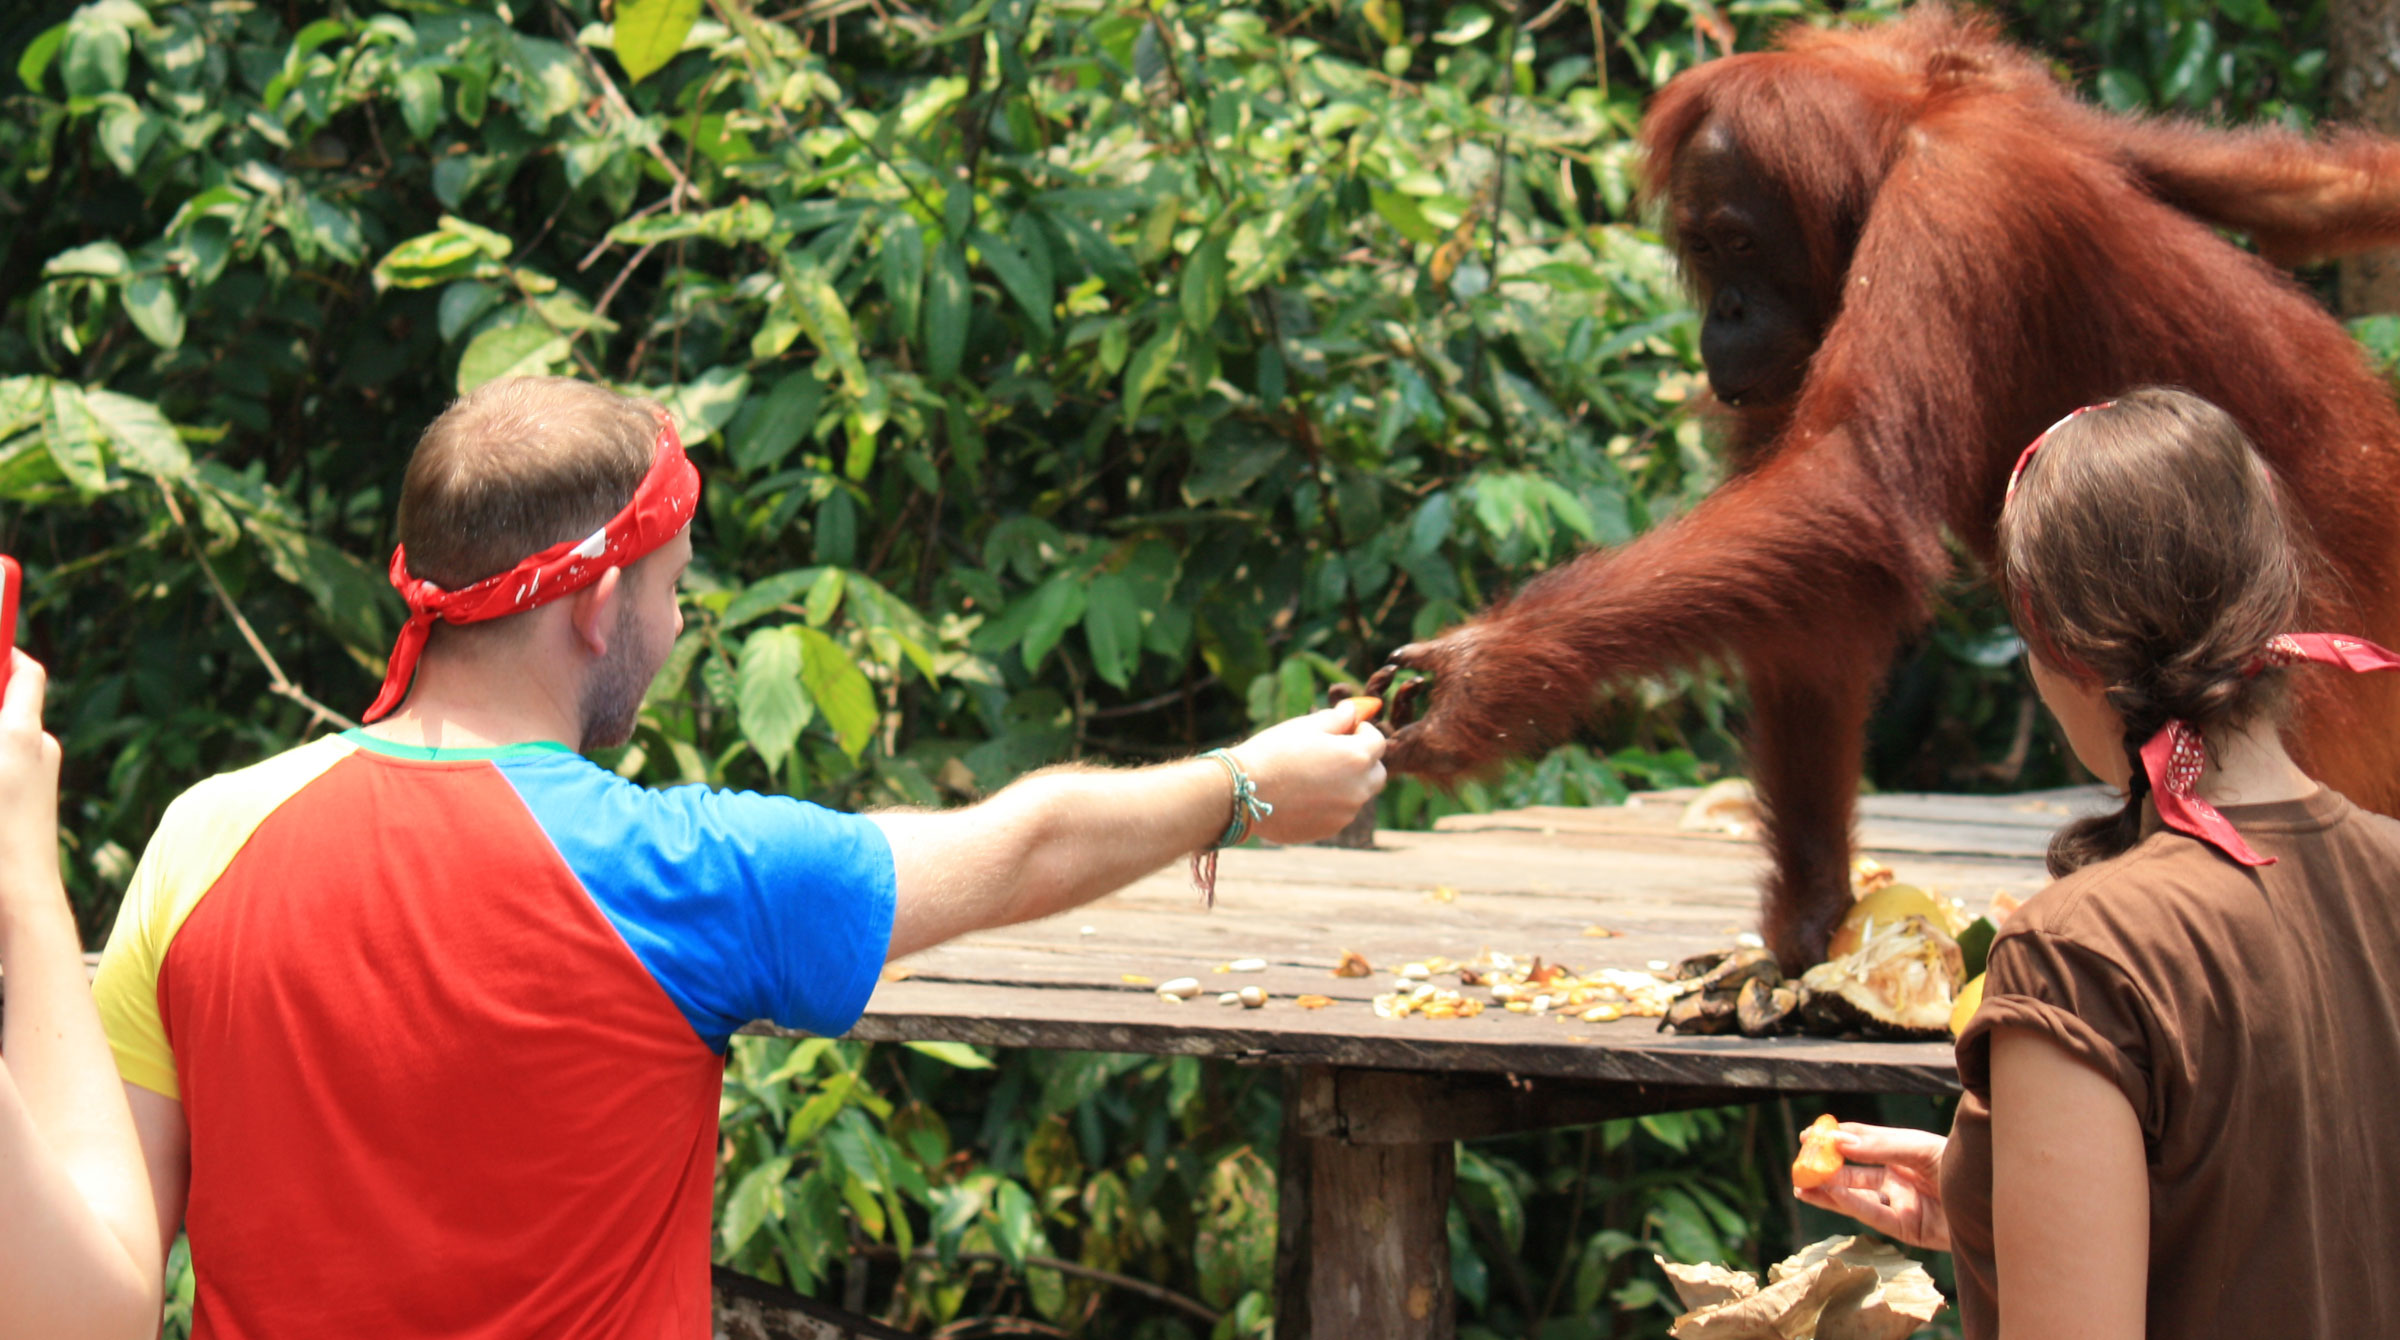 When Paul met Orangutans in the jungle